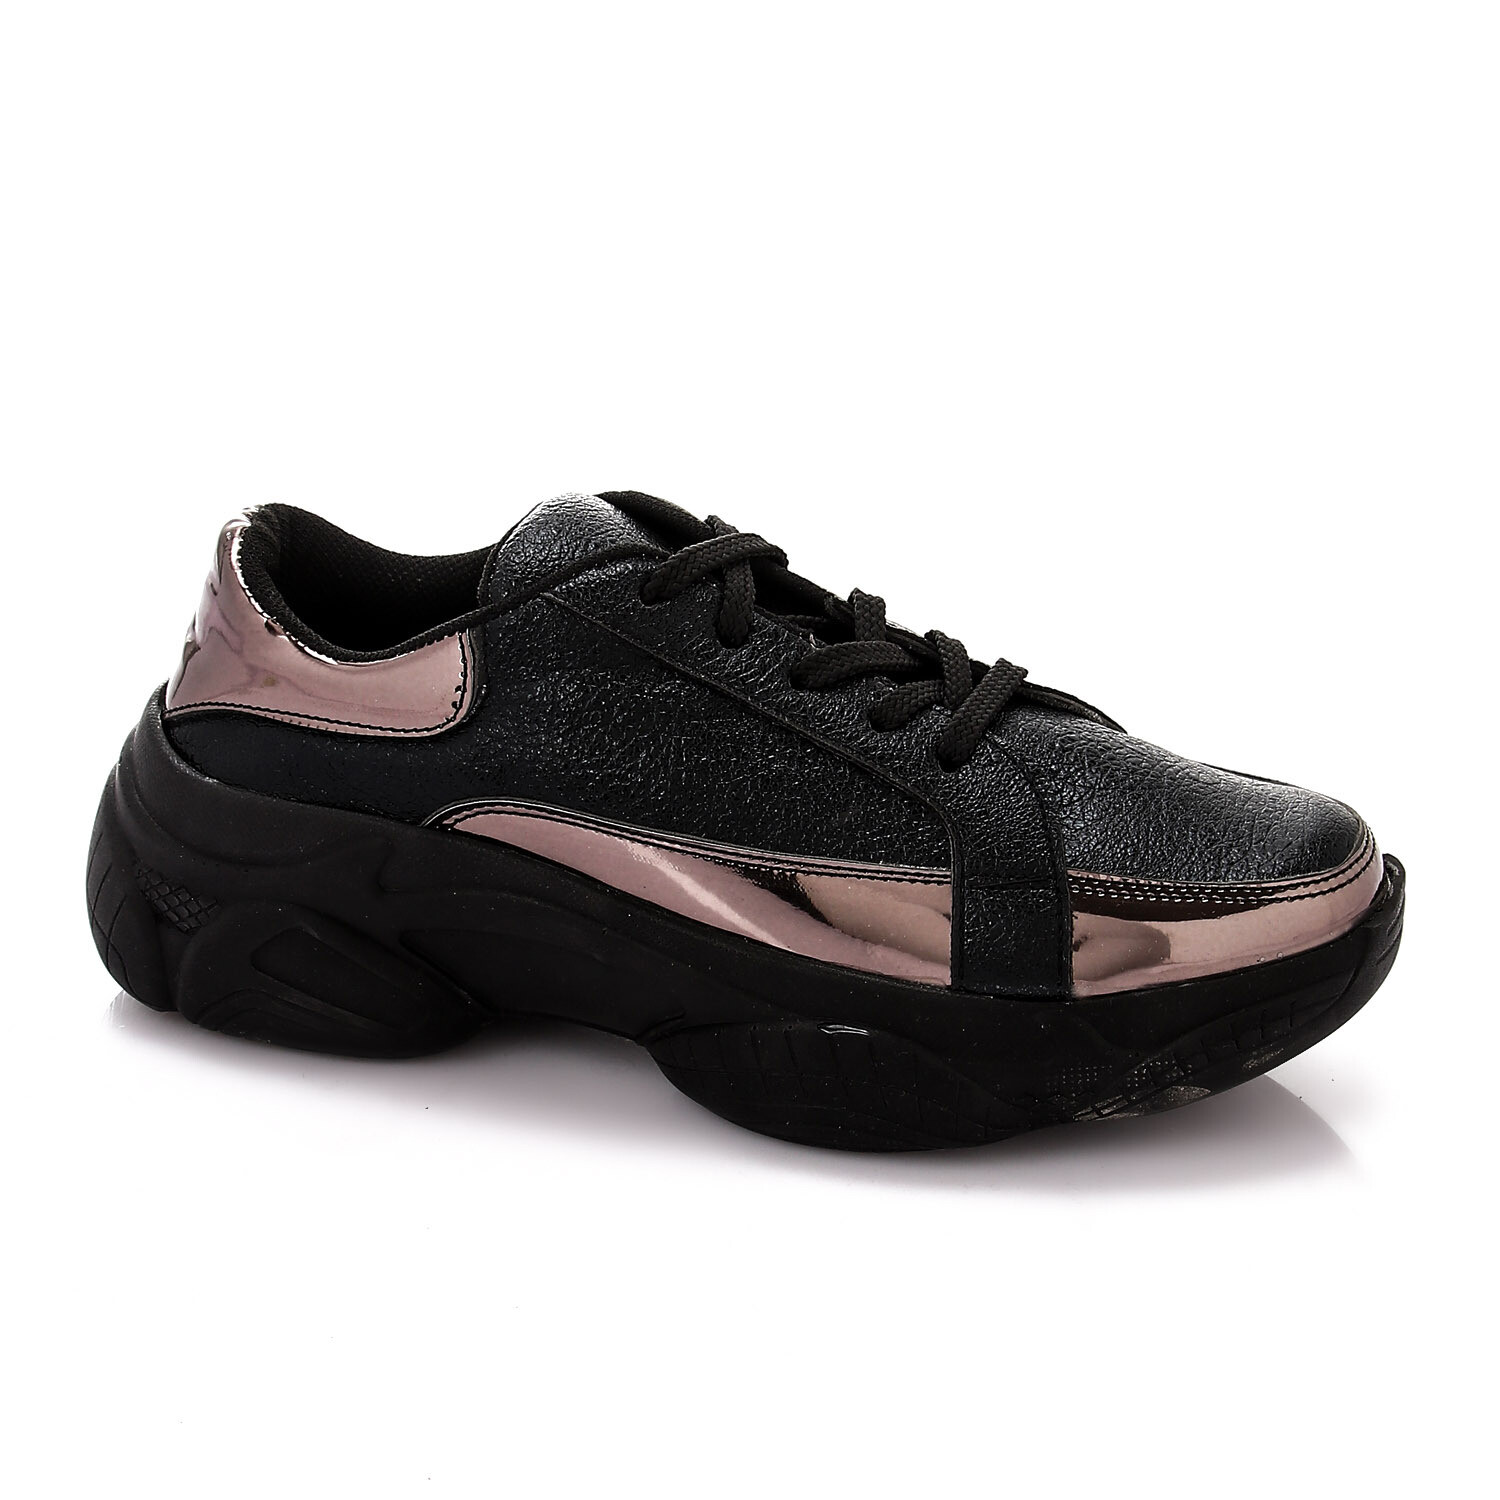 3480 Casual Shoes -Black*gray